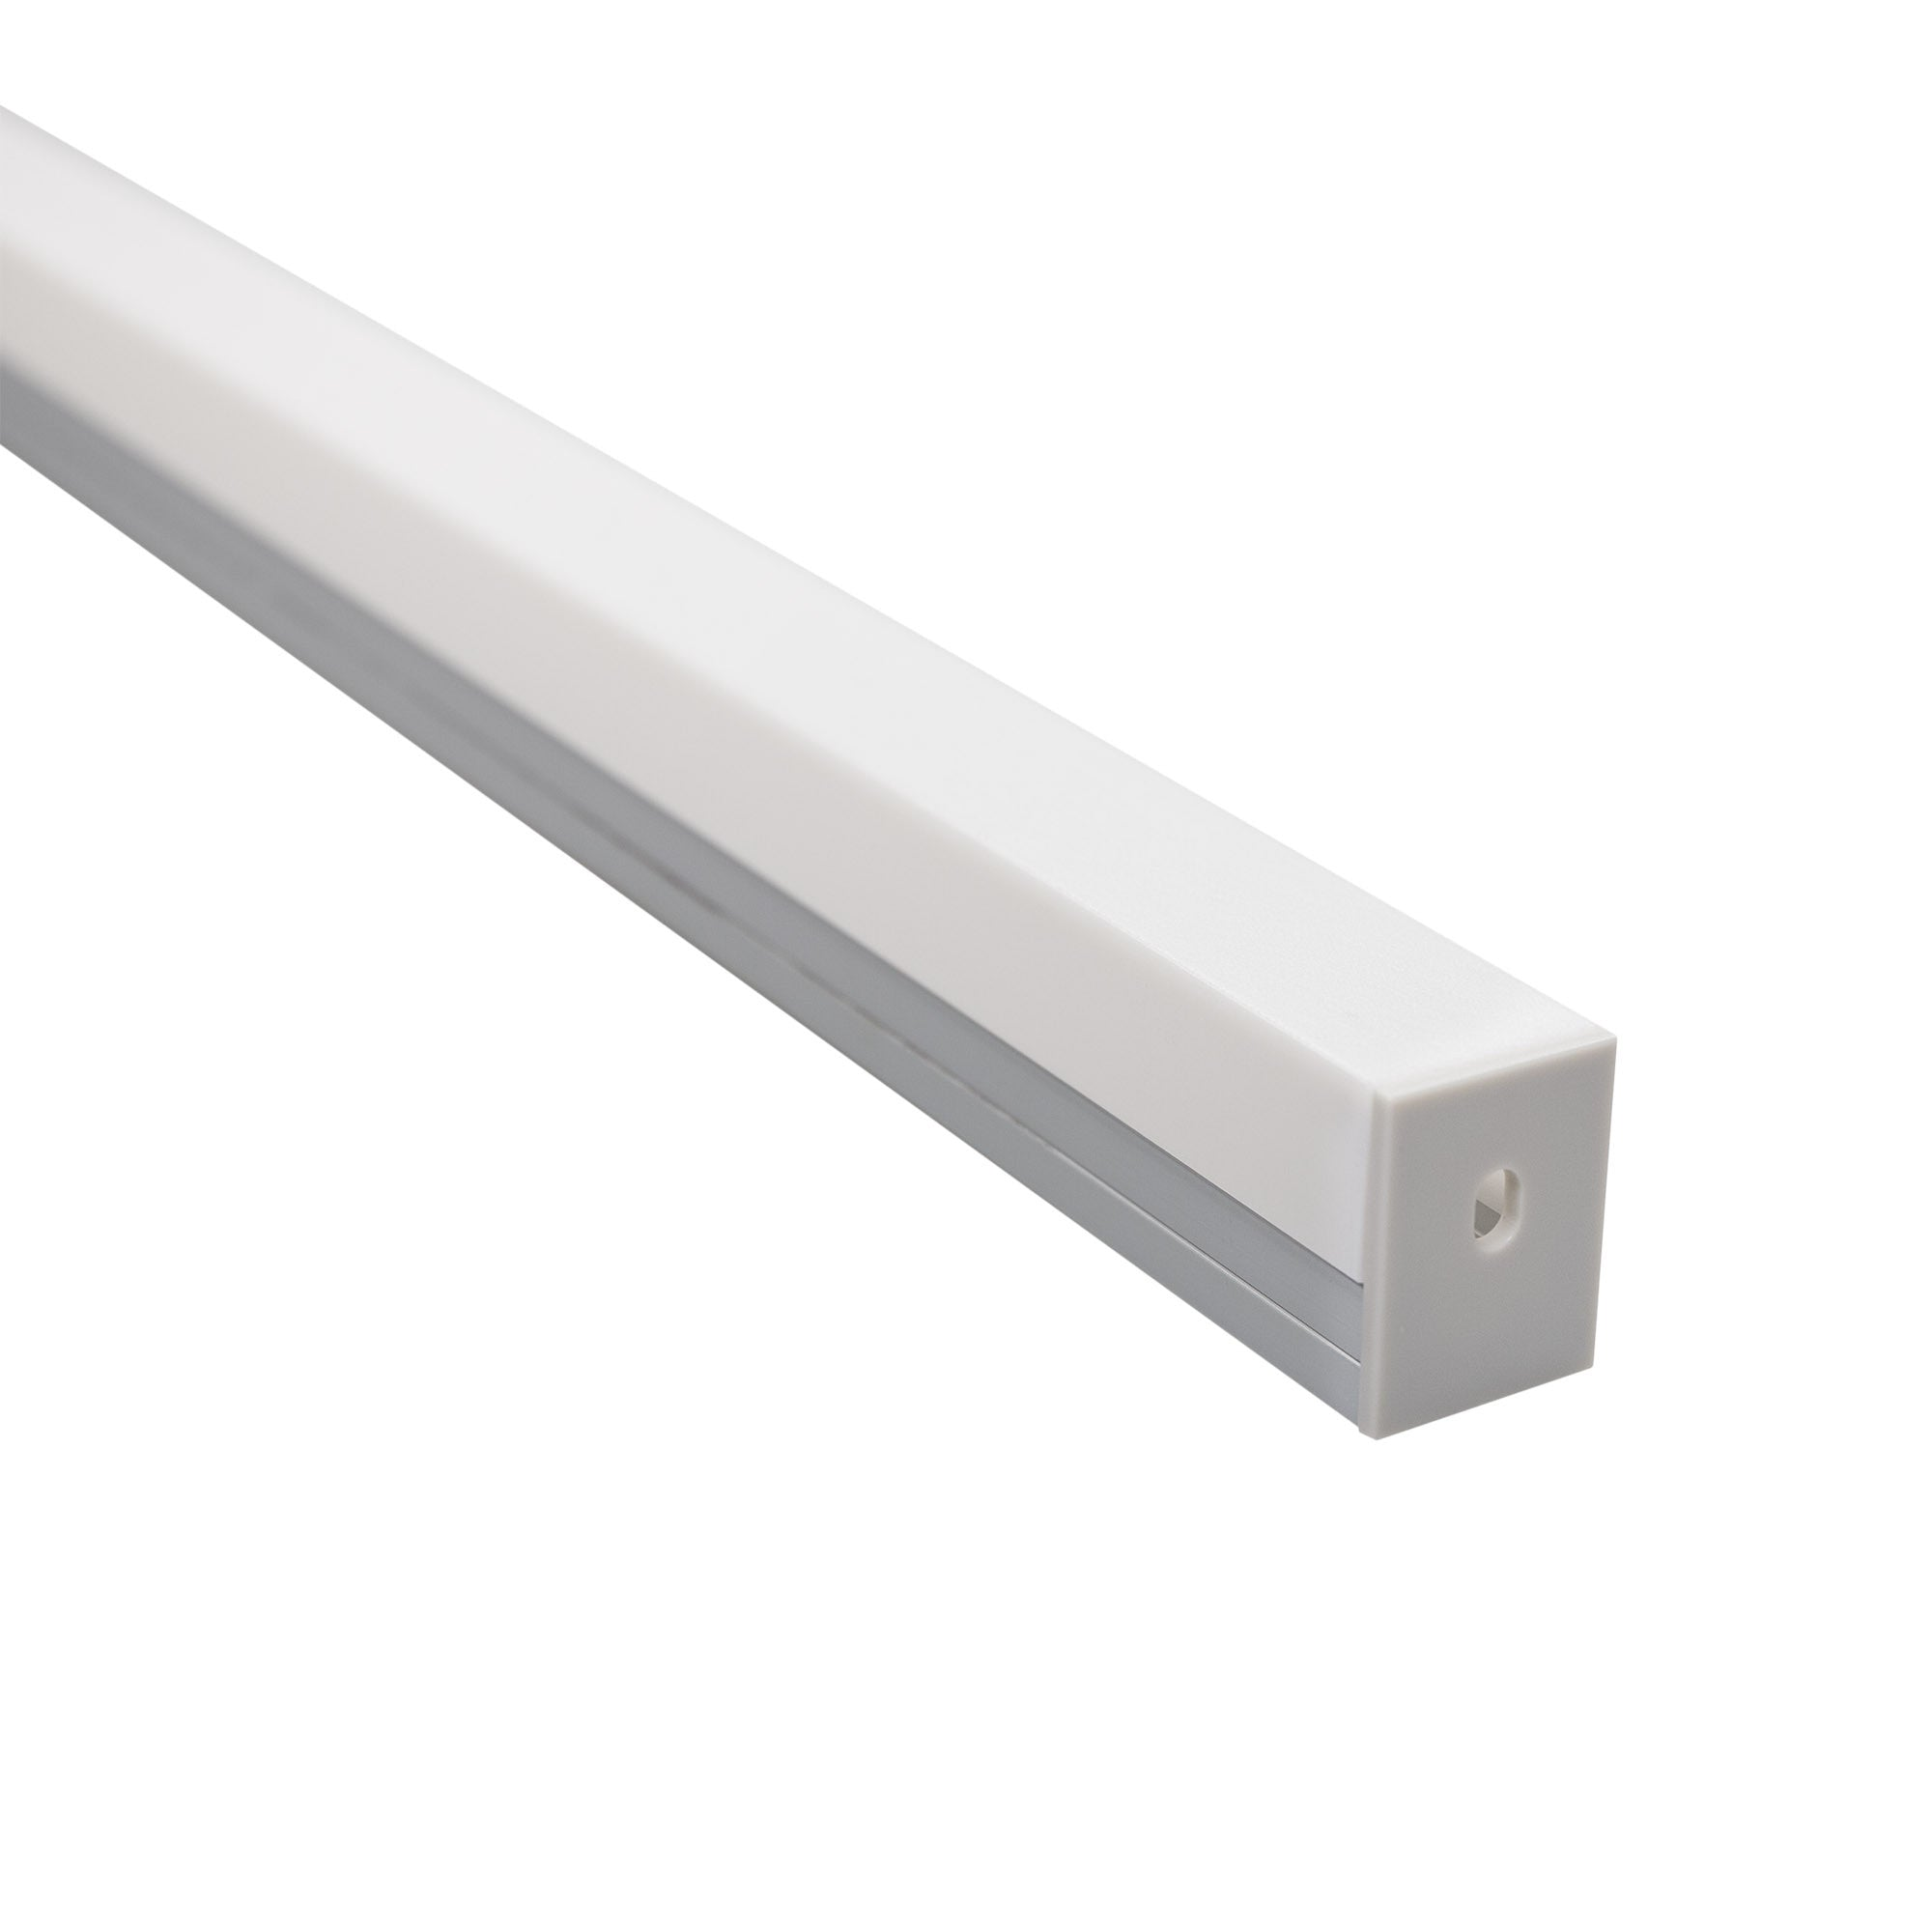 Aluminum Channel - MOSS-ALM-2027 - Moss LED